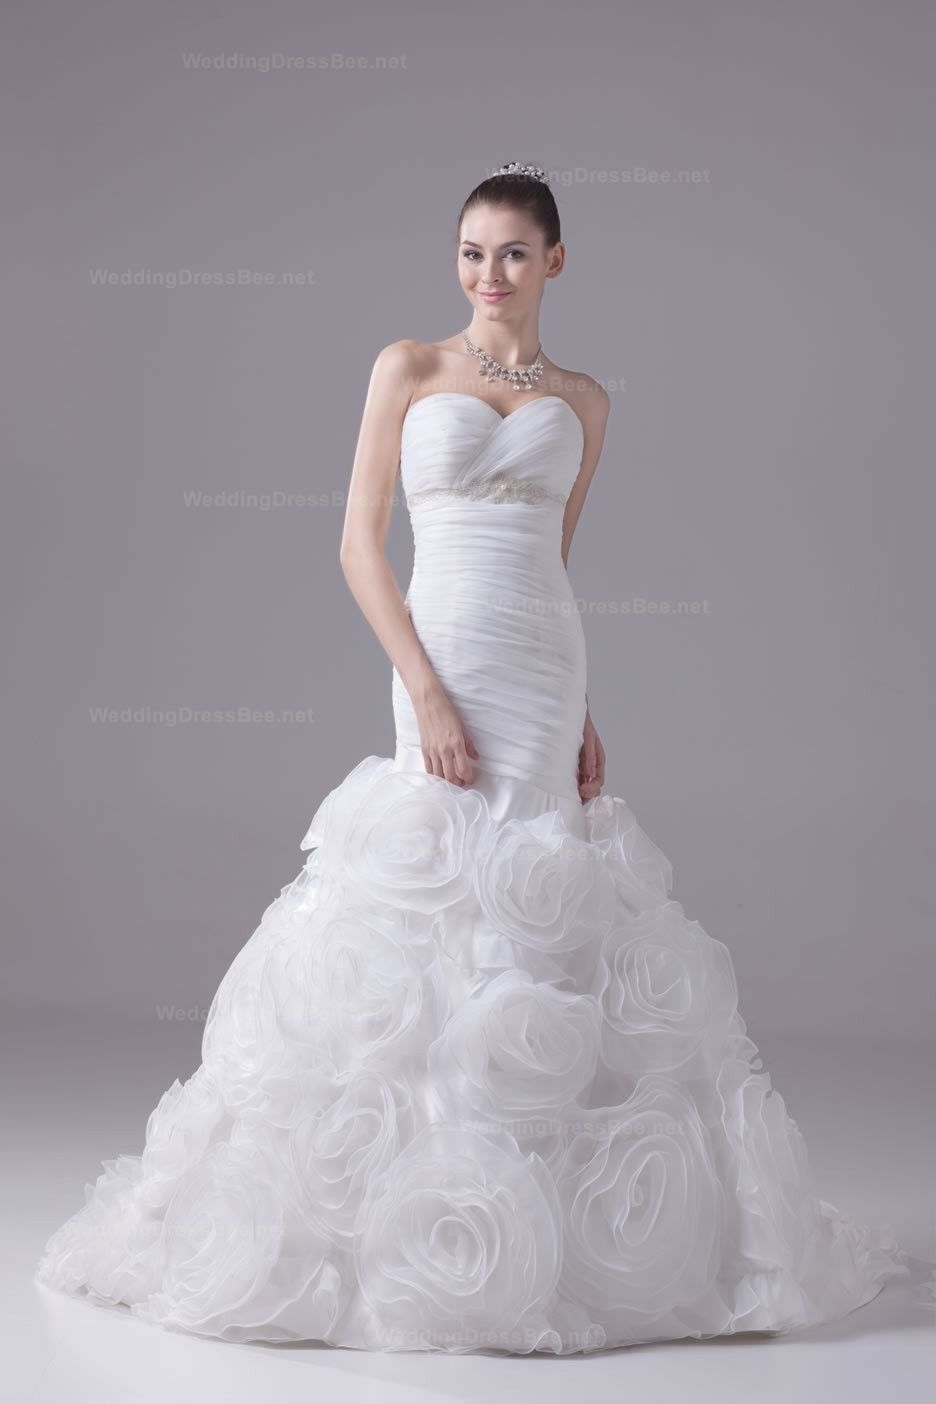 Sweetheart Fully Ruched Wedding Dress With Flowers Bottom 43198